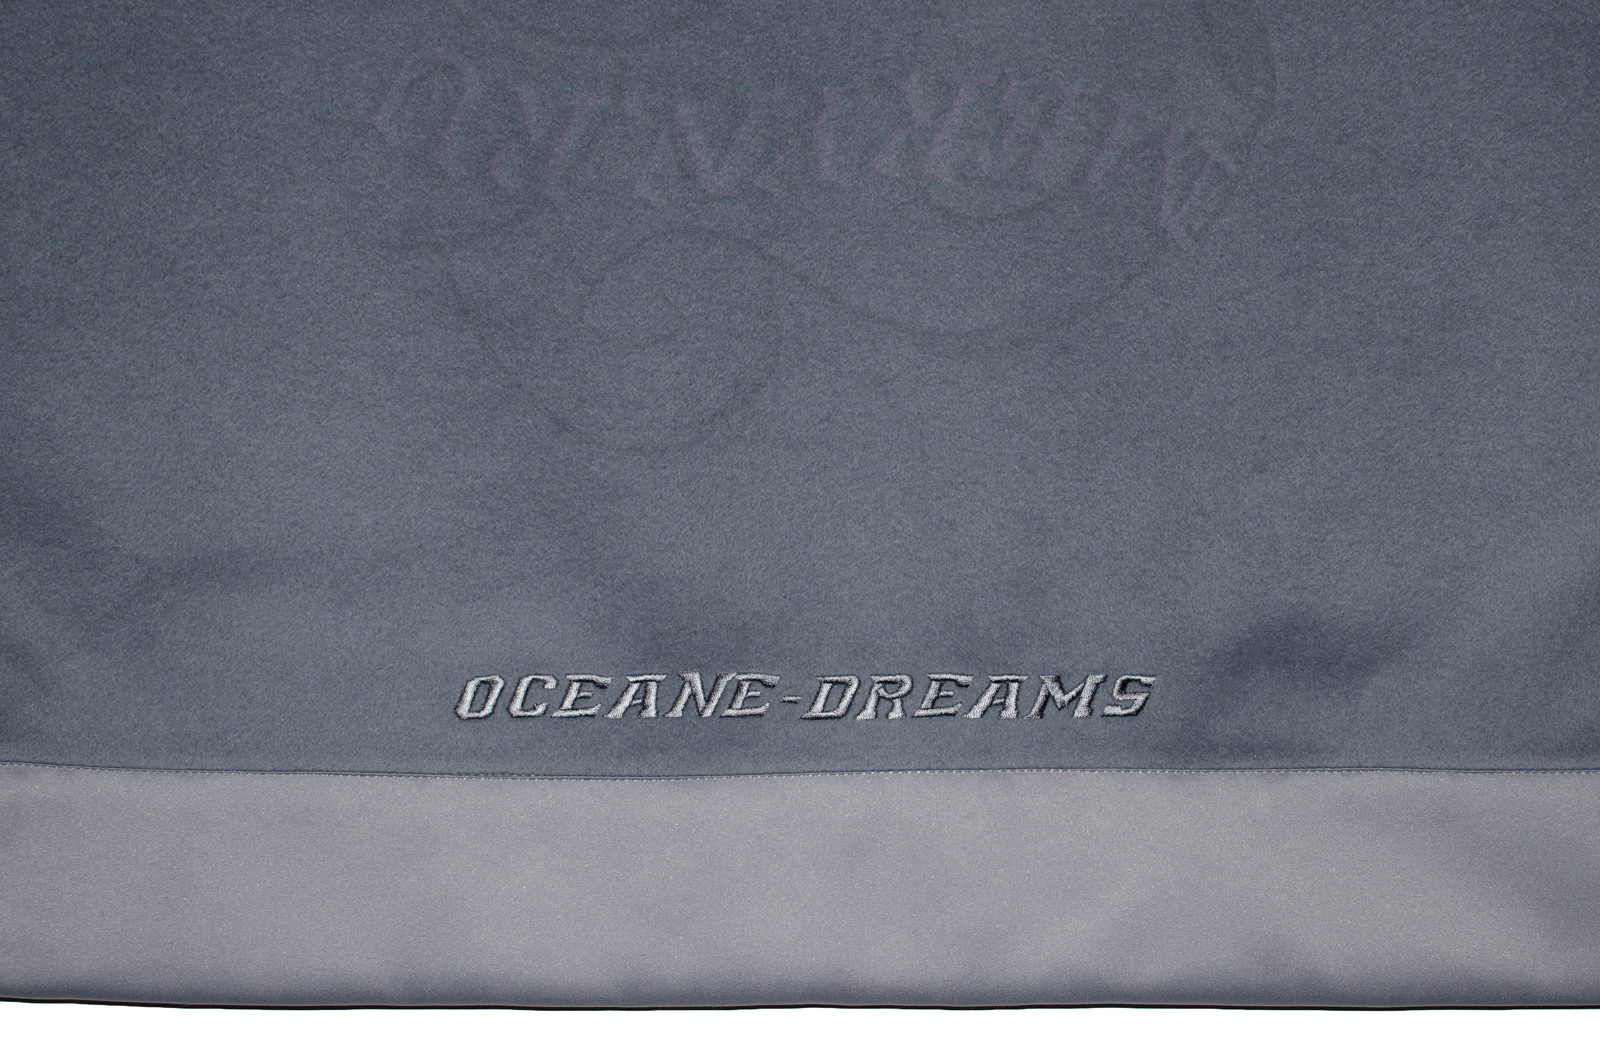 Oceane Dreams Mode Image Anoword Search Video Image Blog | Apps ...